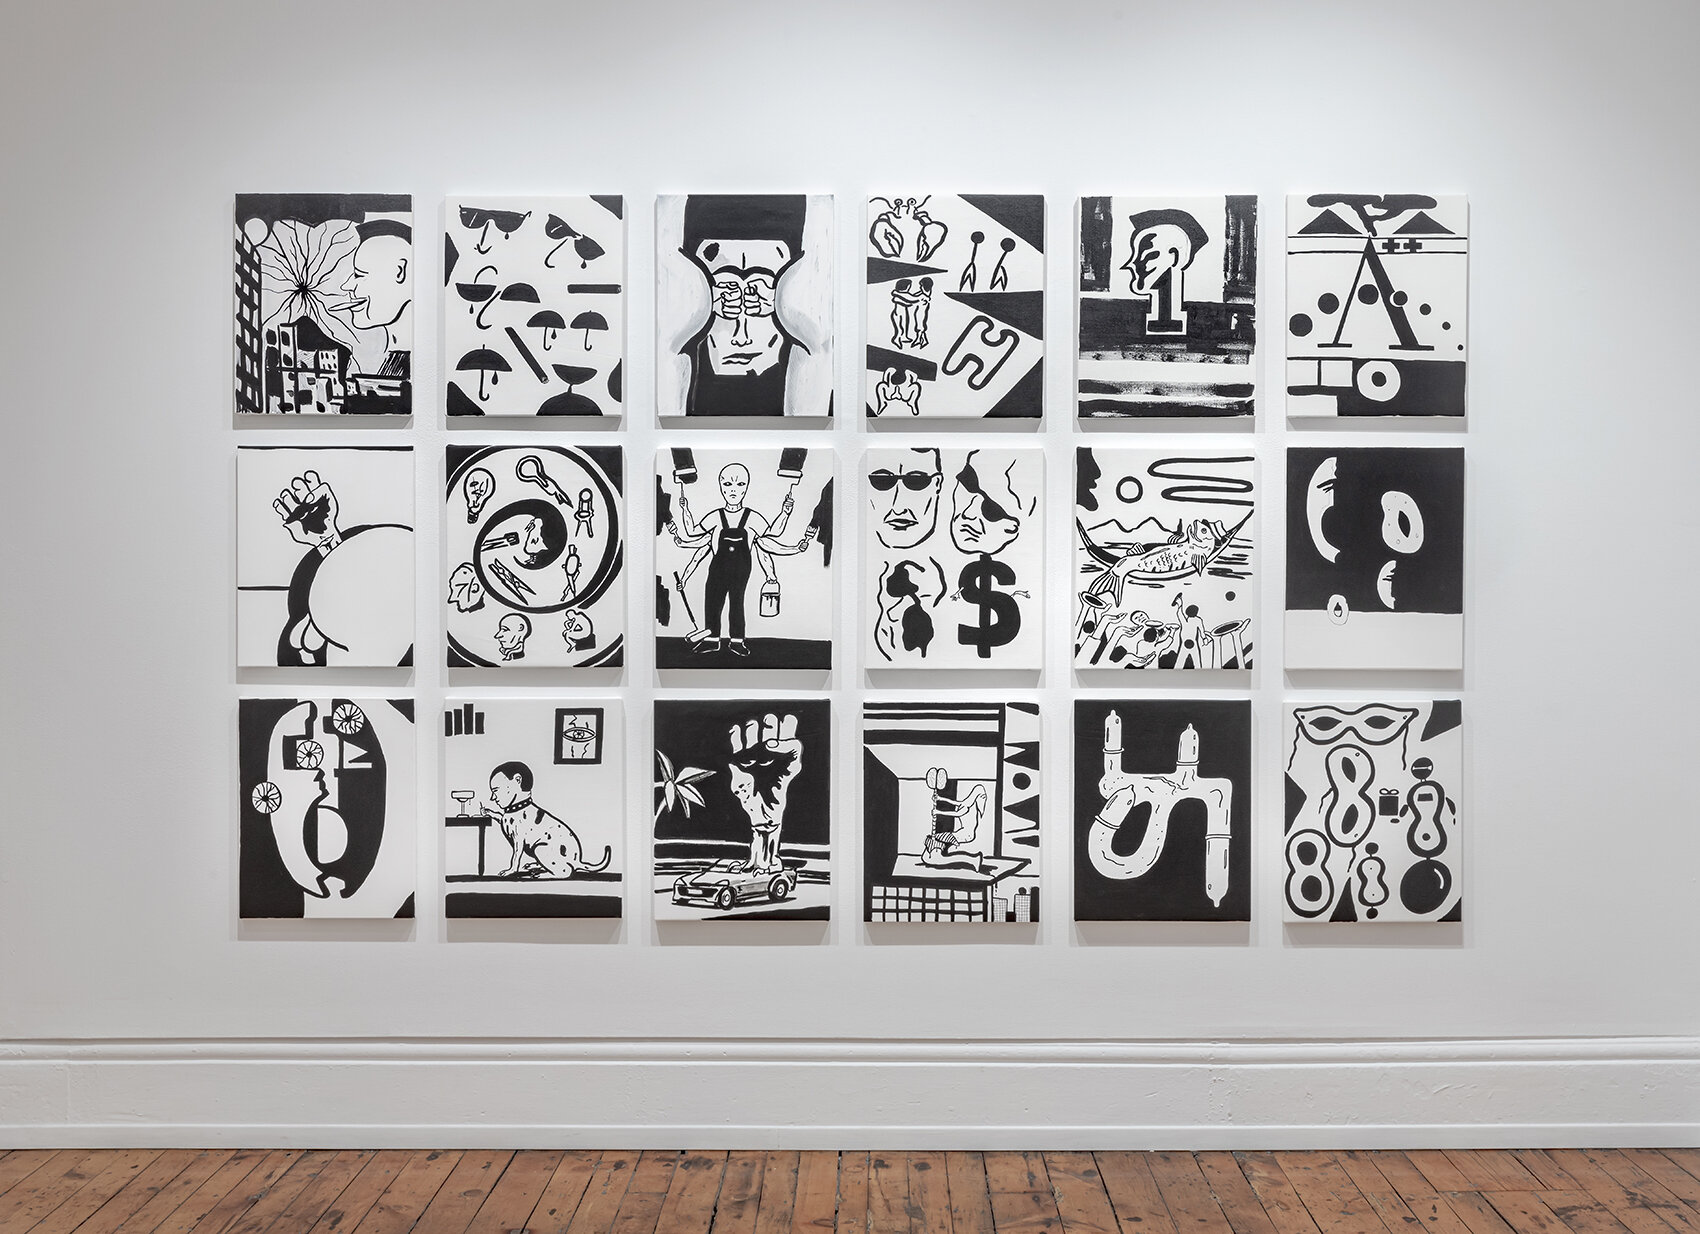 Isaac Midnight Repairs 2019 installation view 5  Low Res.jpg